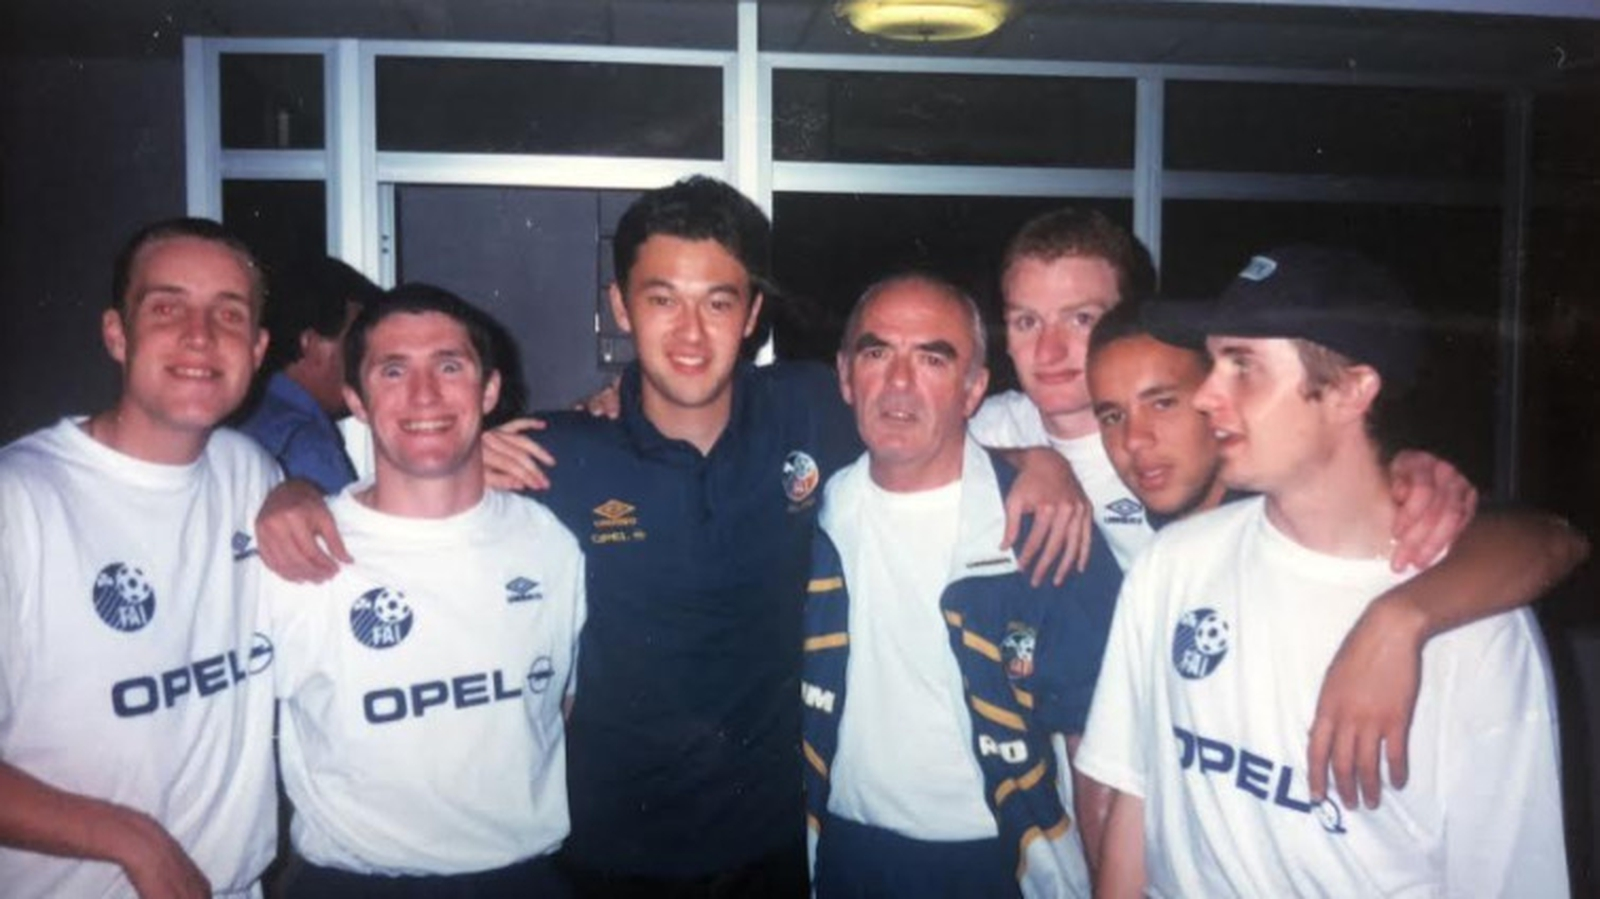 Image - Left to right: Barry Quinn, Robbie Keane, Alex O'Reilly, Dr O'Callaghan, Gary Doherty, Liam George,